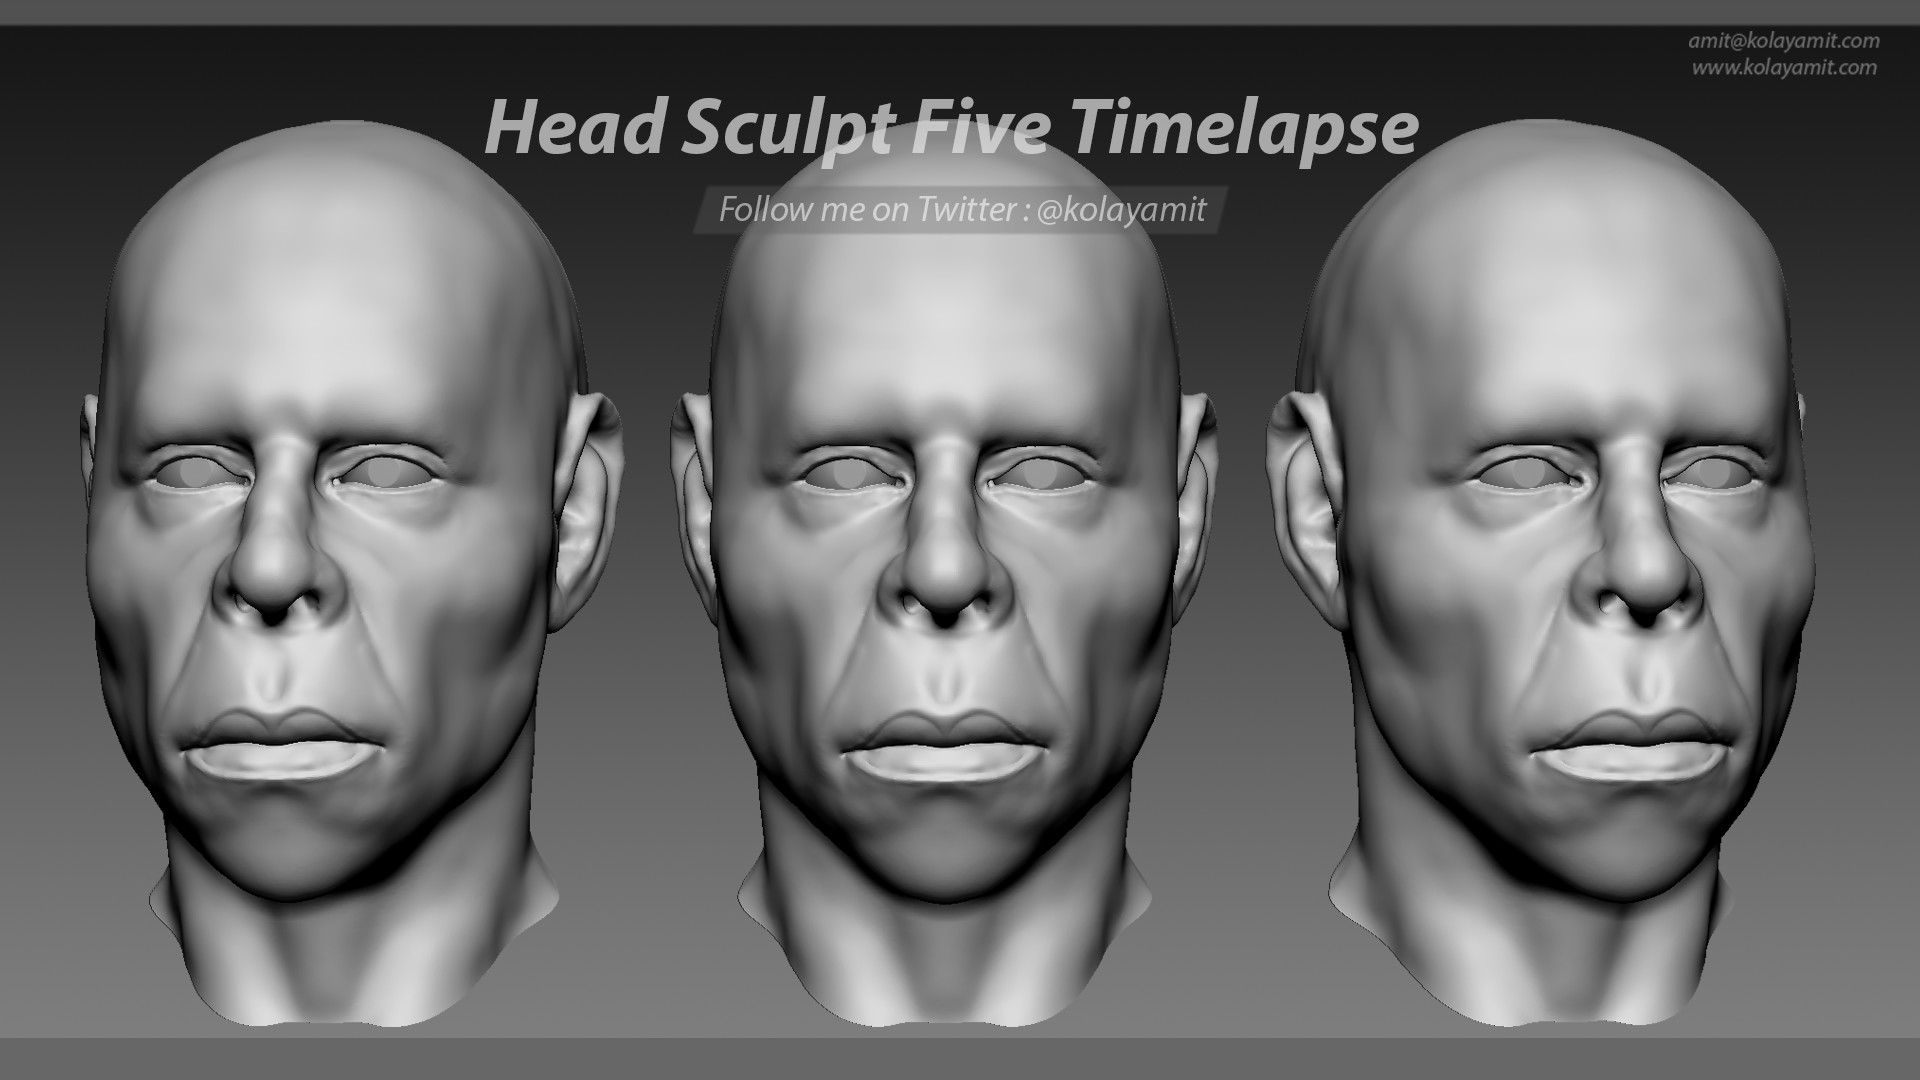 Head Sculpt Five Timelapse